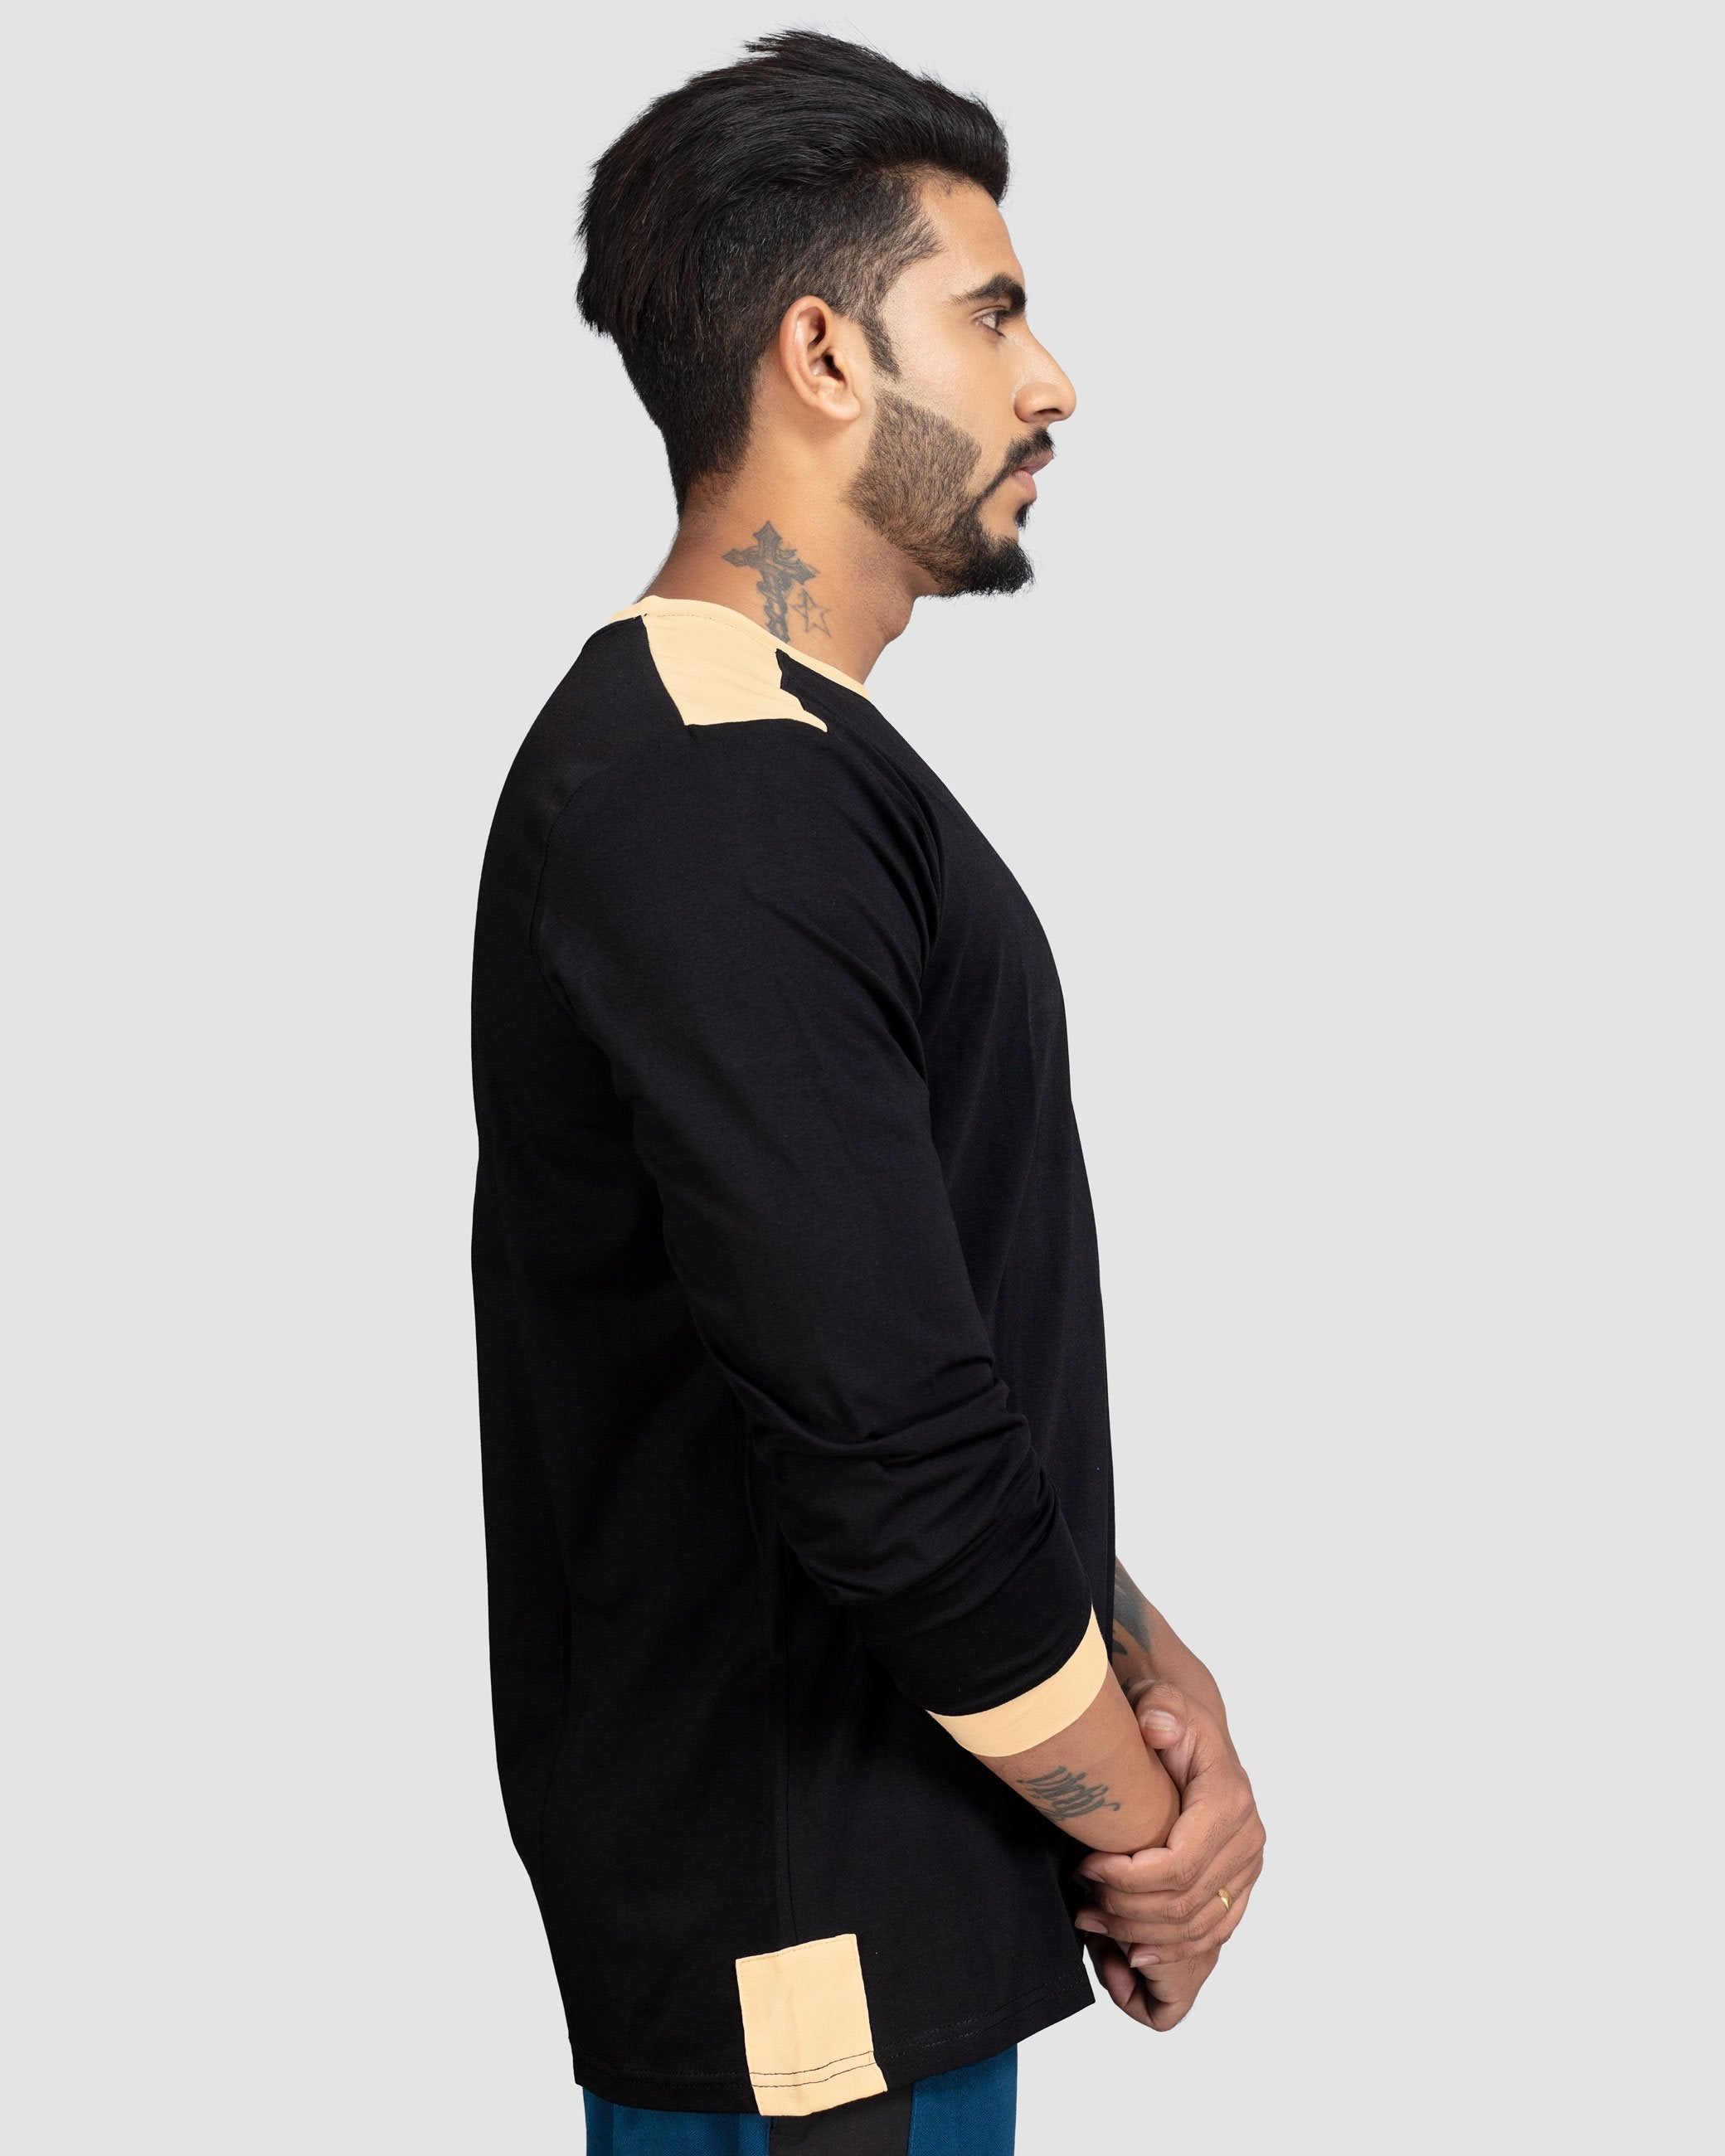 Flex Inspire ringer t-shirt(Charcoal Black With Skin patch) Athflex